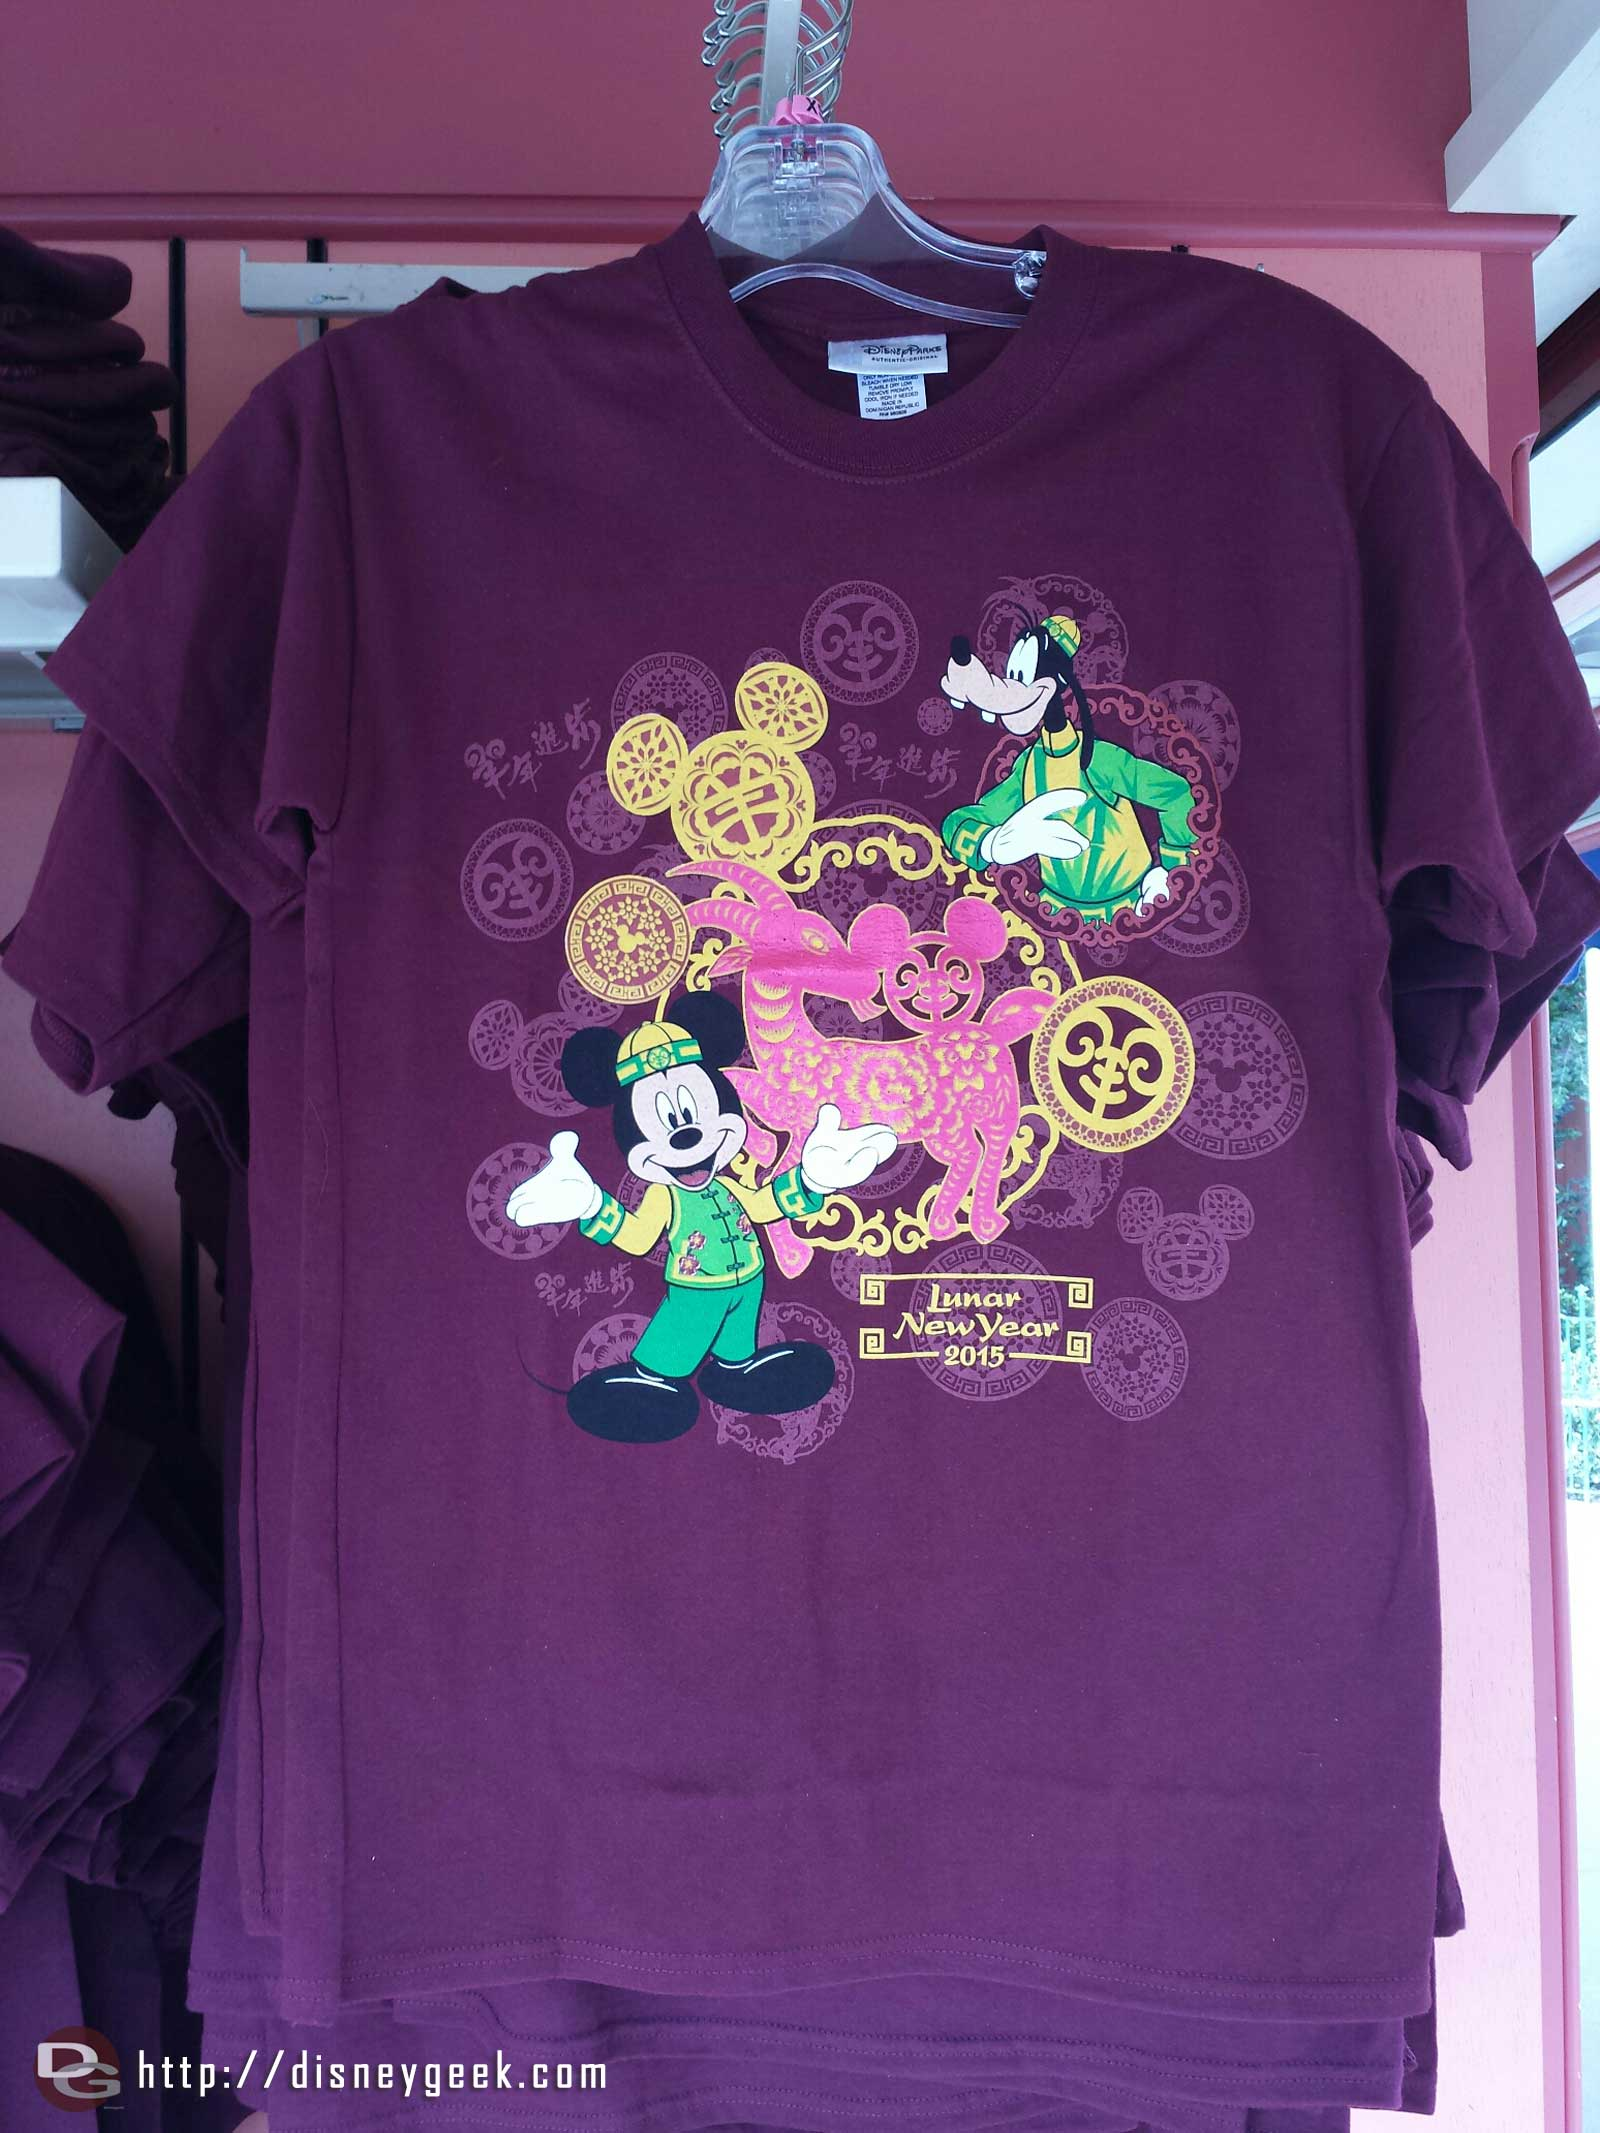 Lunar New Year 2015 shirts are available for purchase